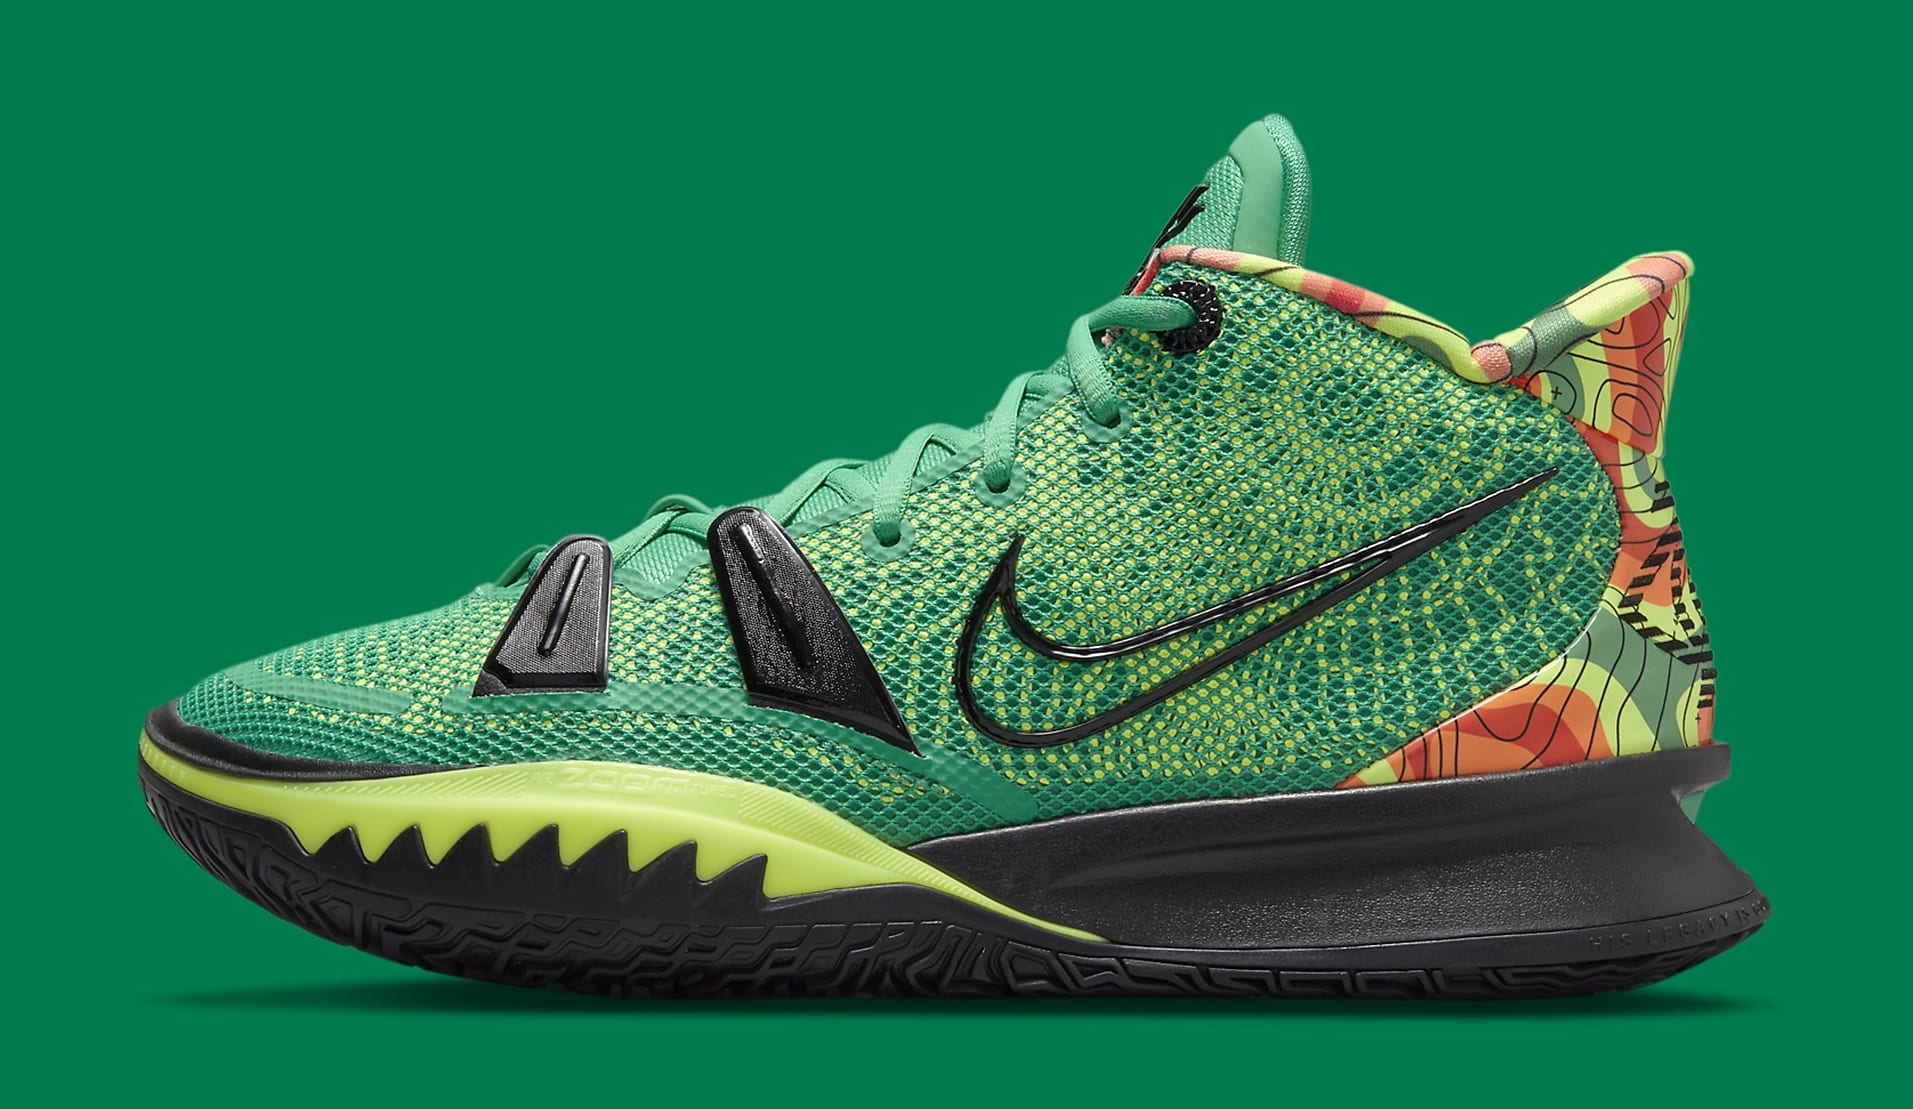 Nike Kyrie 7 'Weatherman' CQ9327-300 Lateral